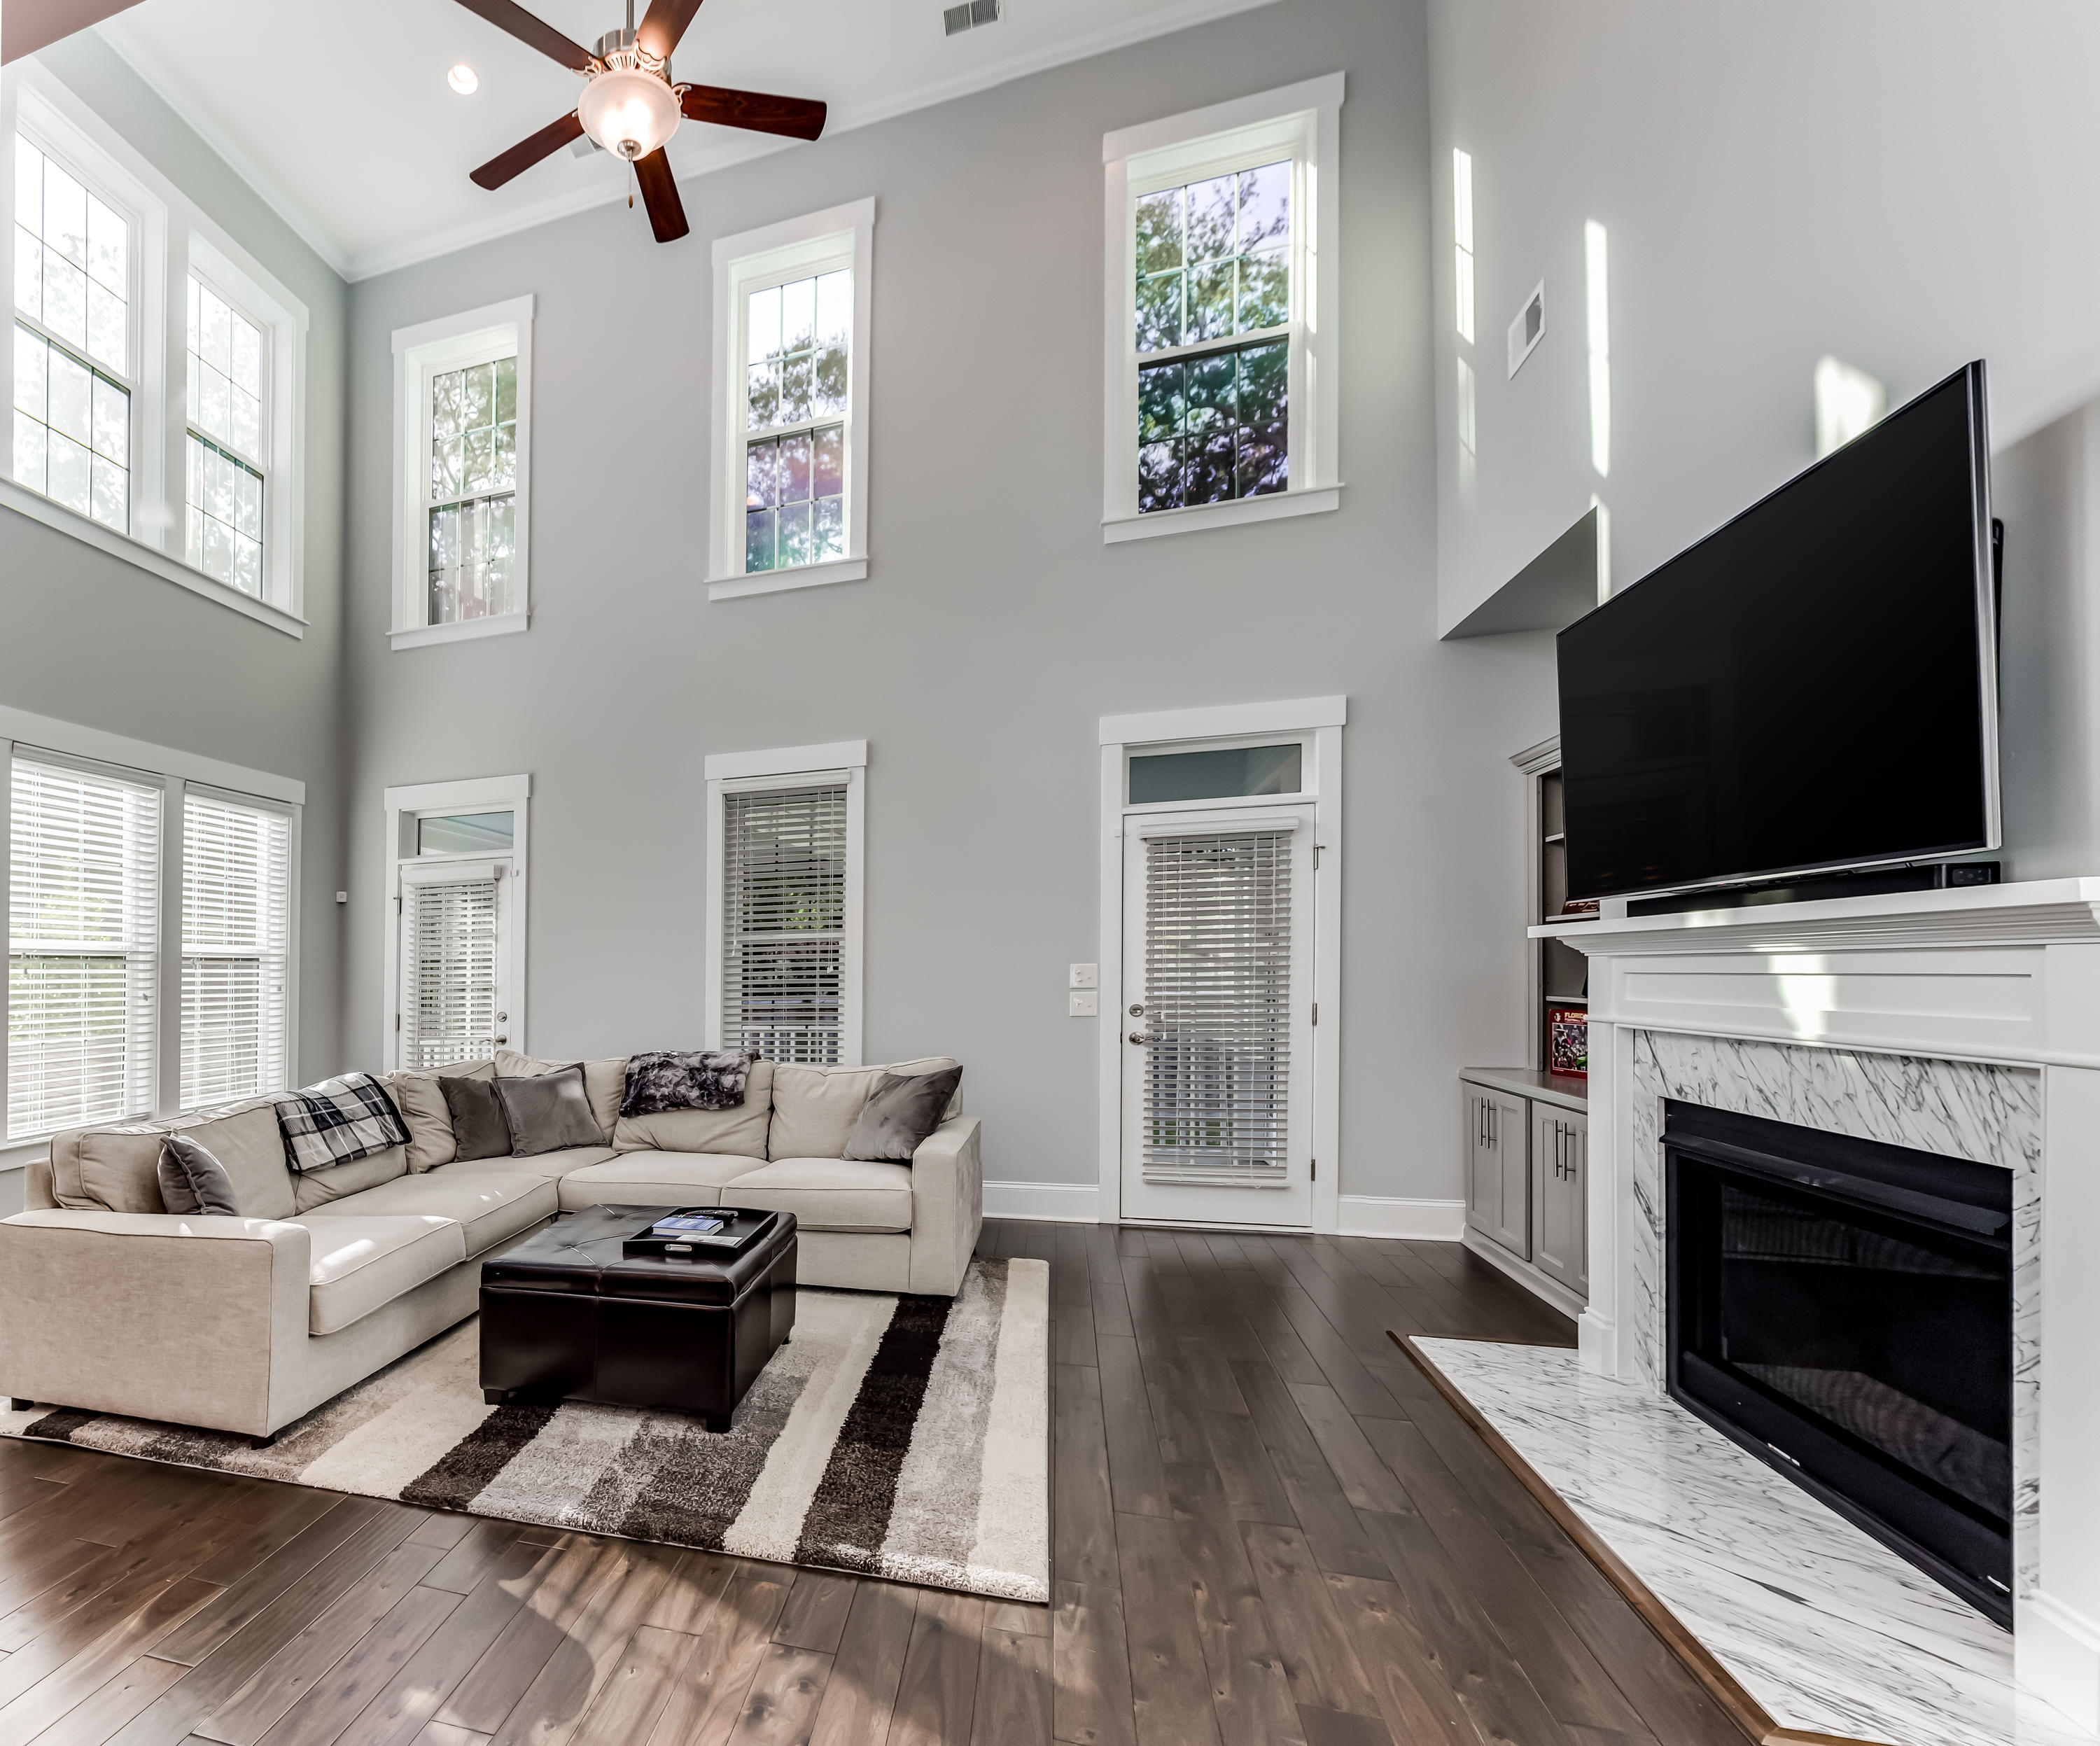 The Village at Stiles Point Homes For Sale - 849 Shutes Folly, Charleston, SC - 16